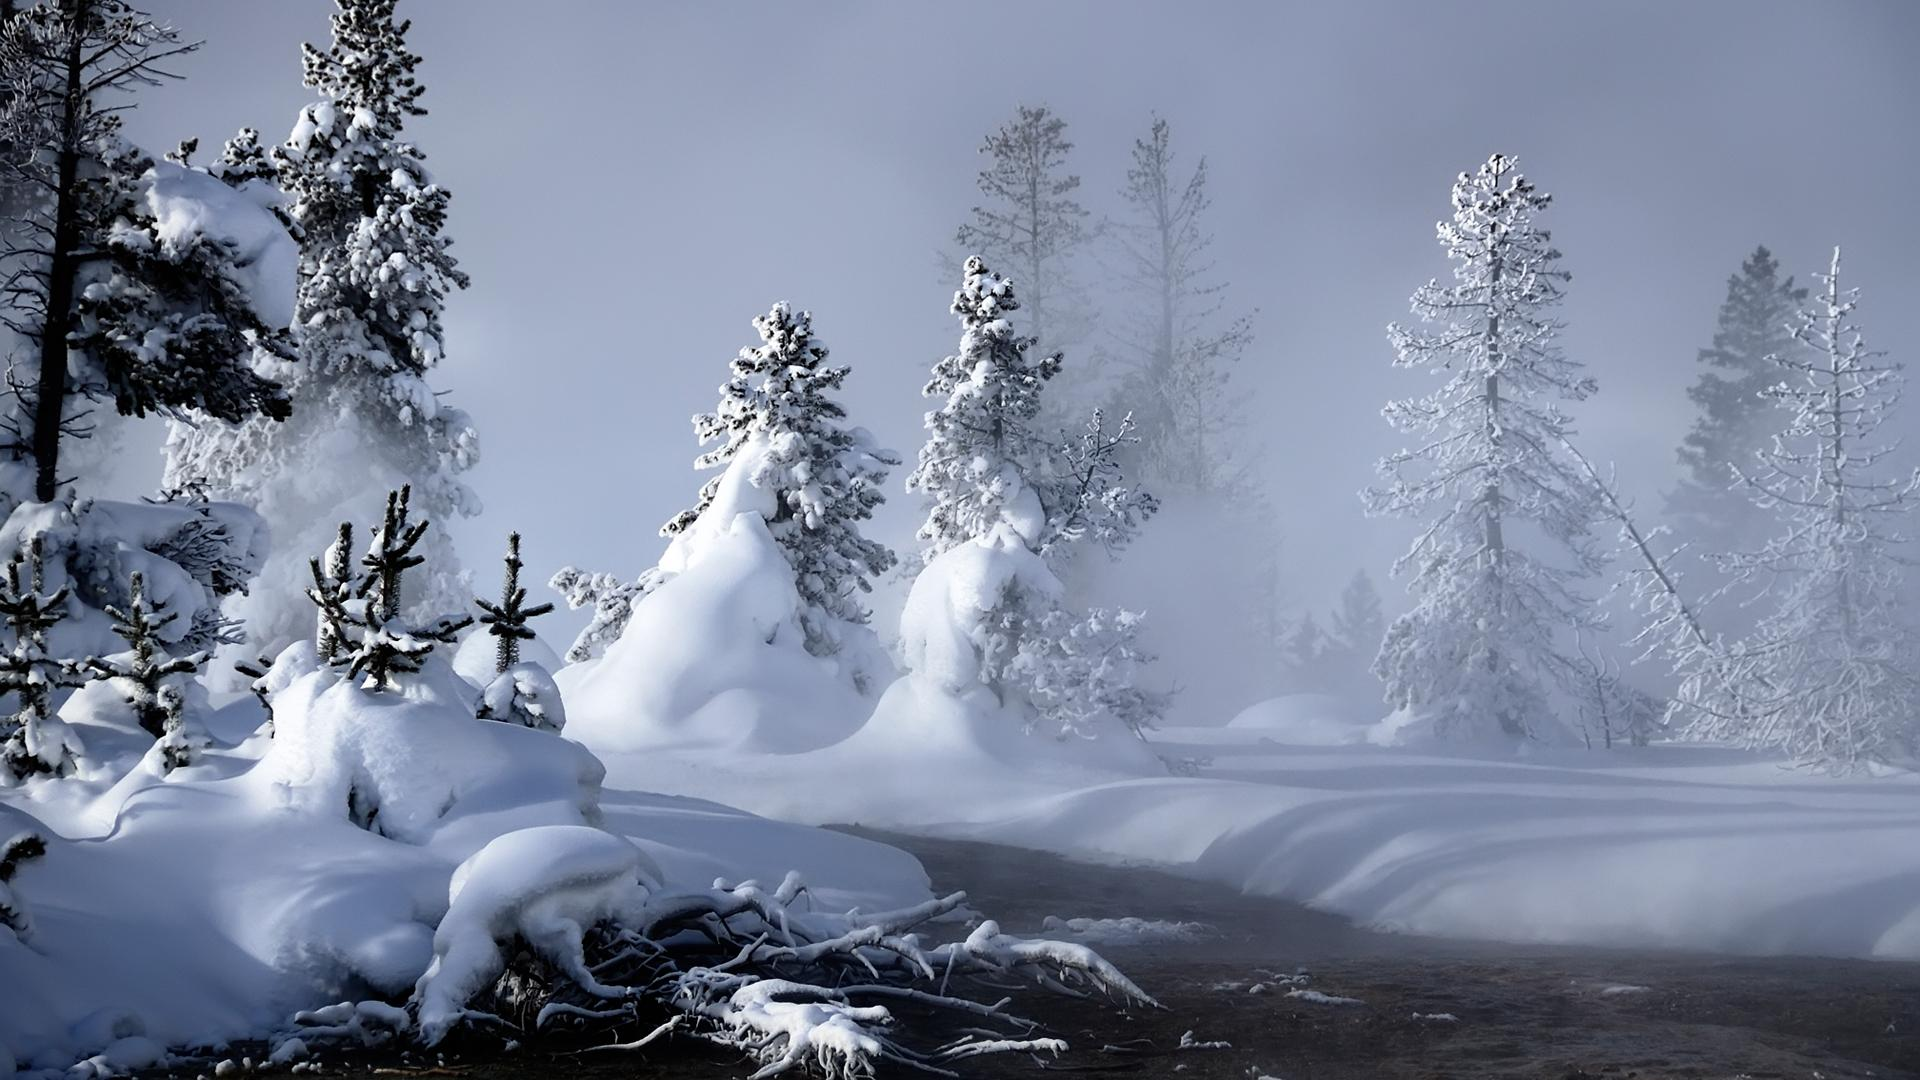 winter wallpapers Download 1920x1080